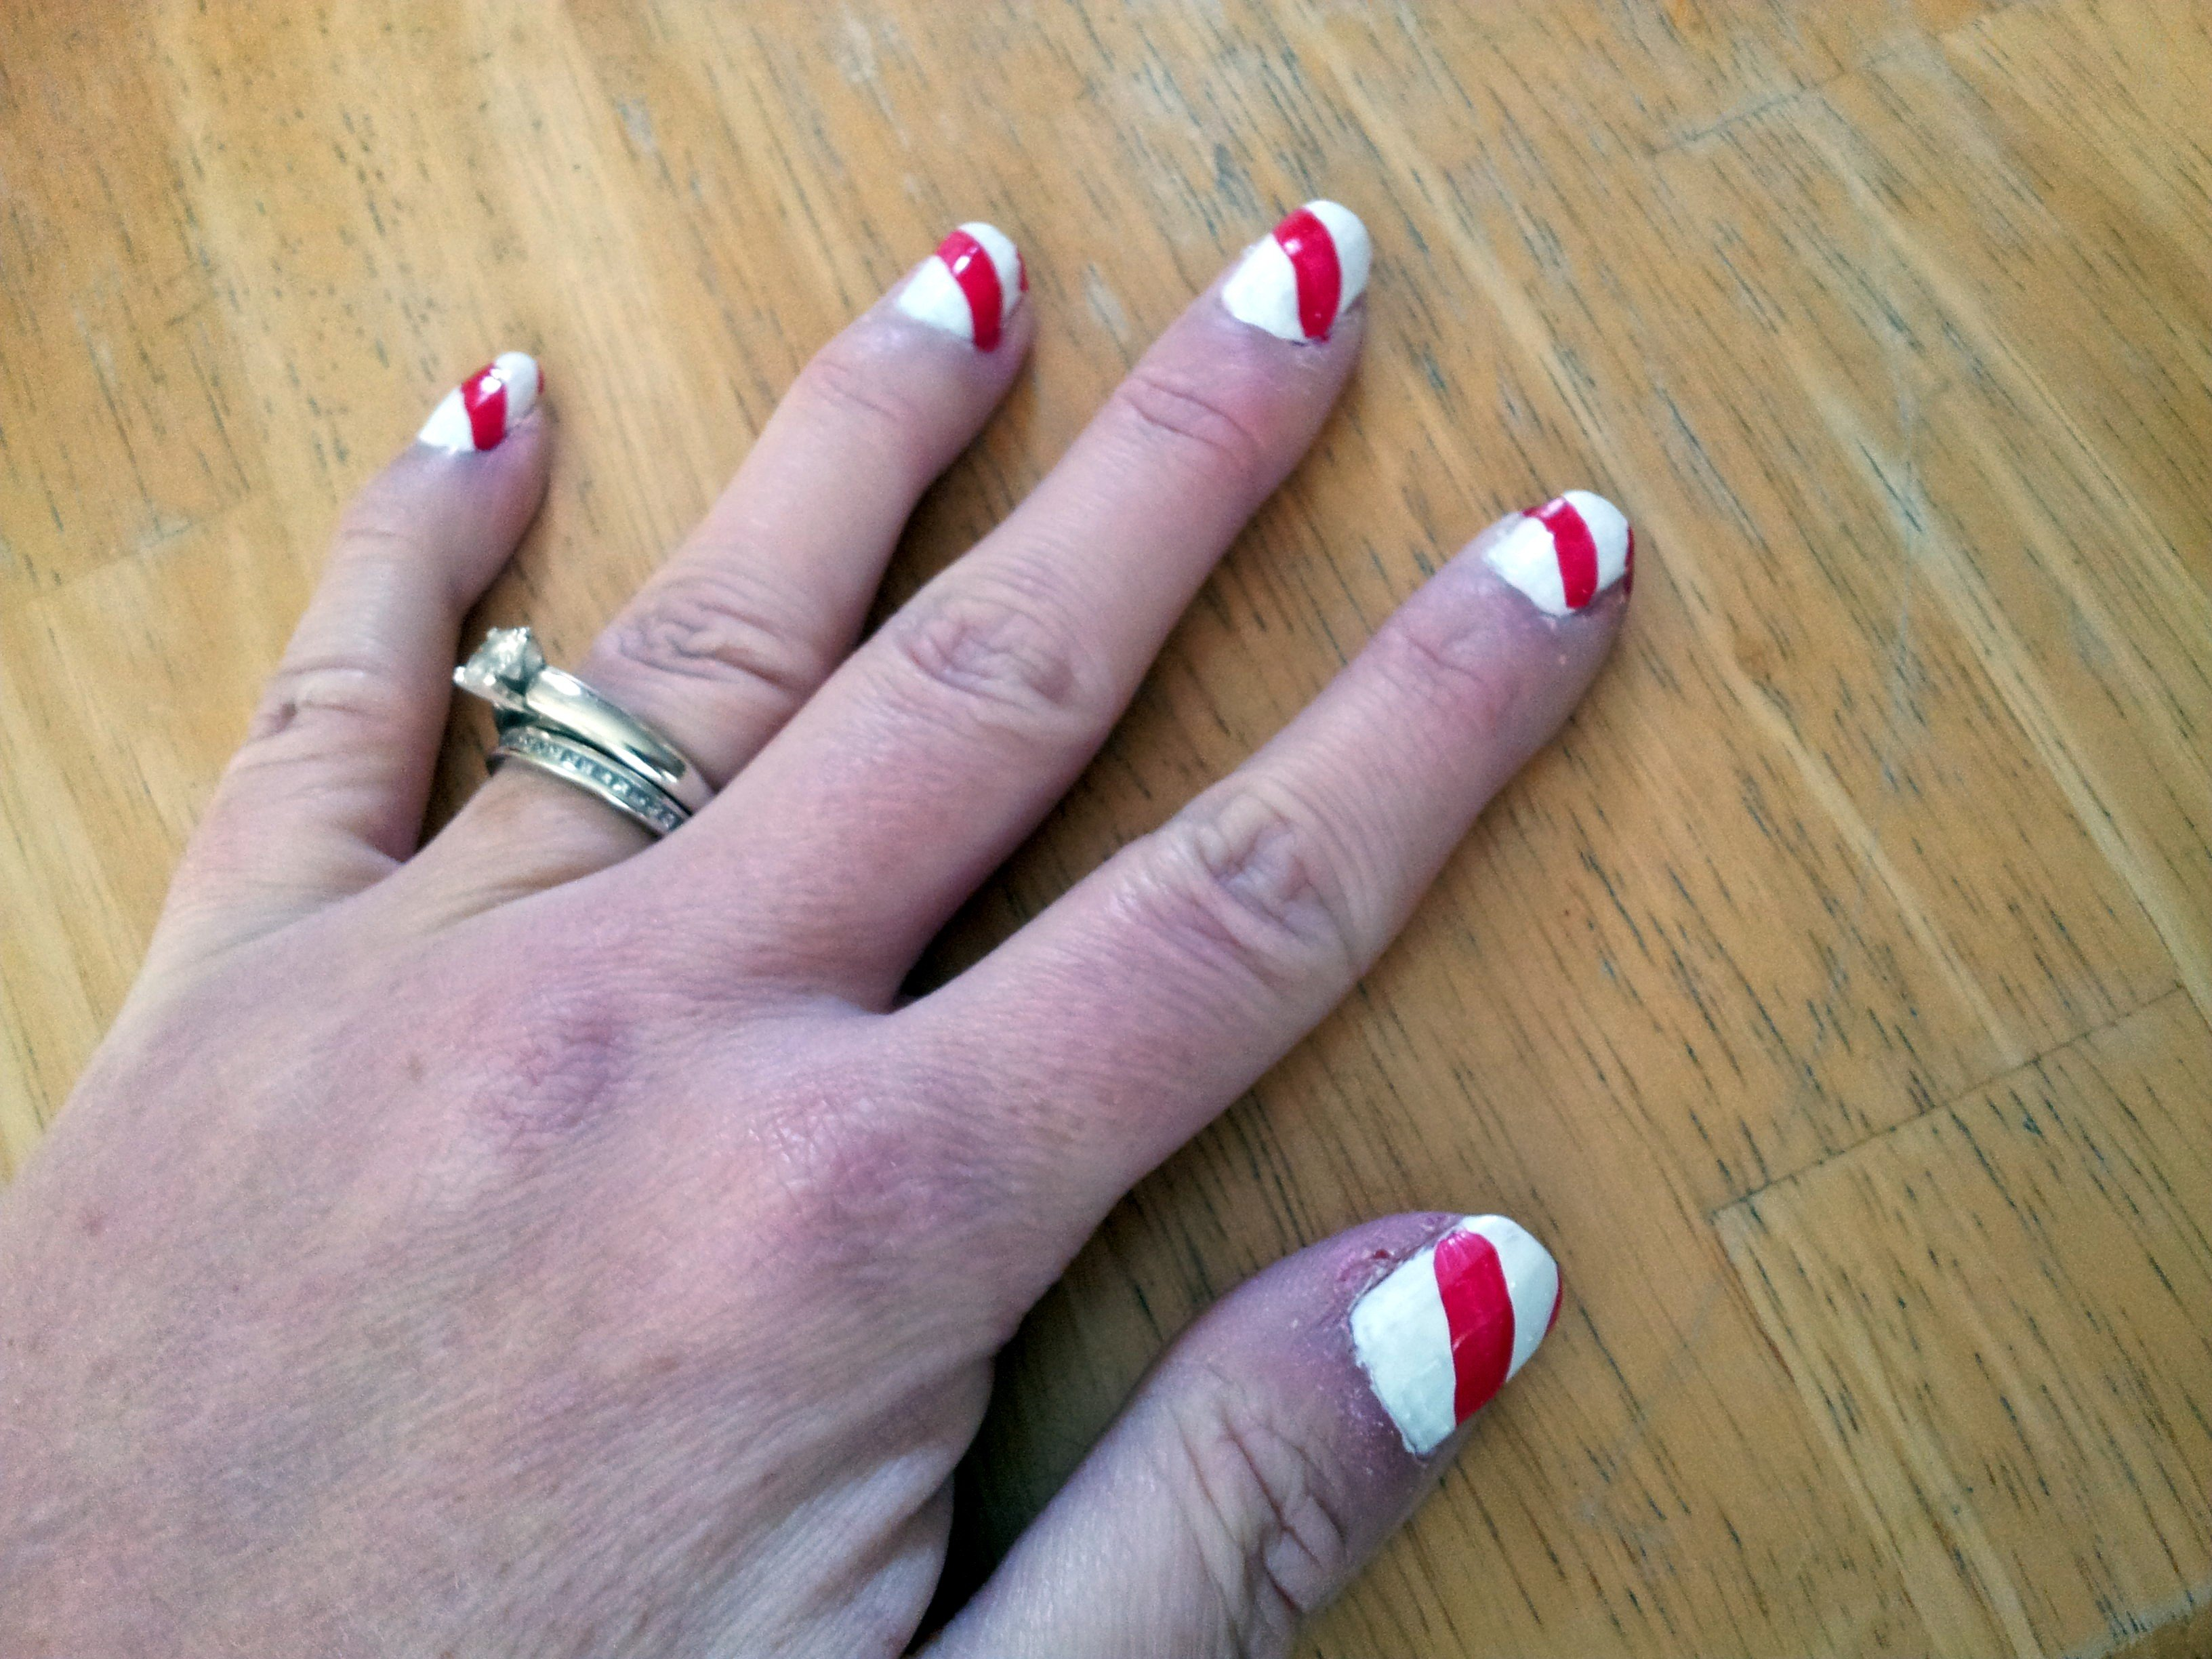 Candy cane nails with red stripe